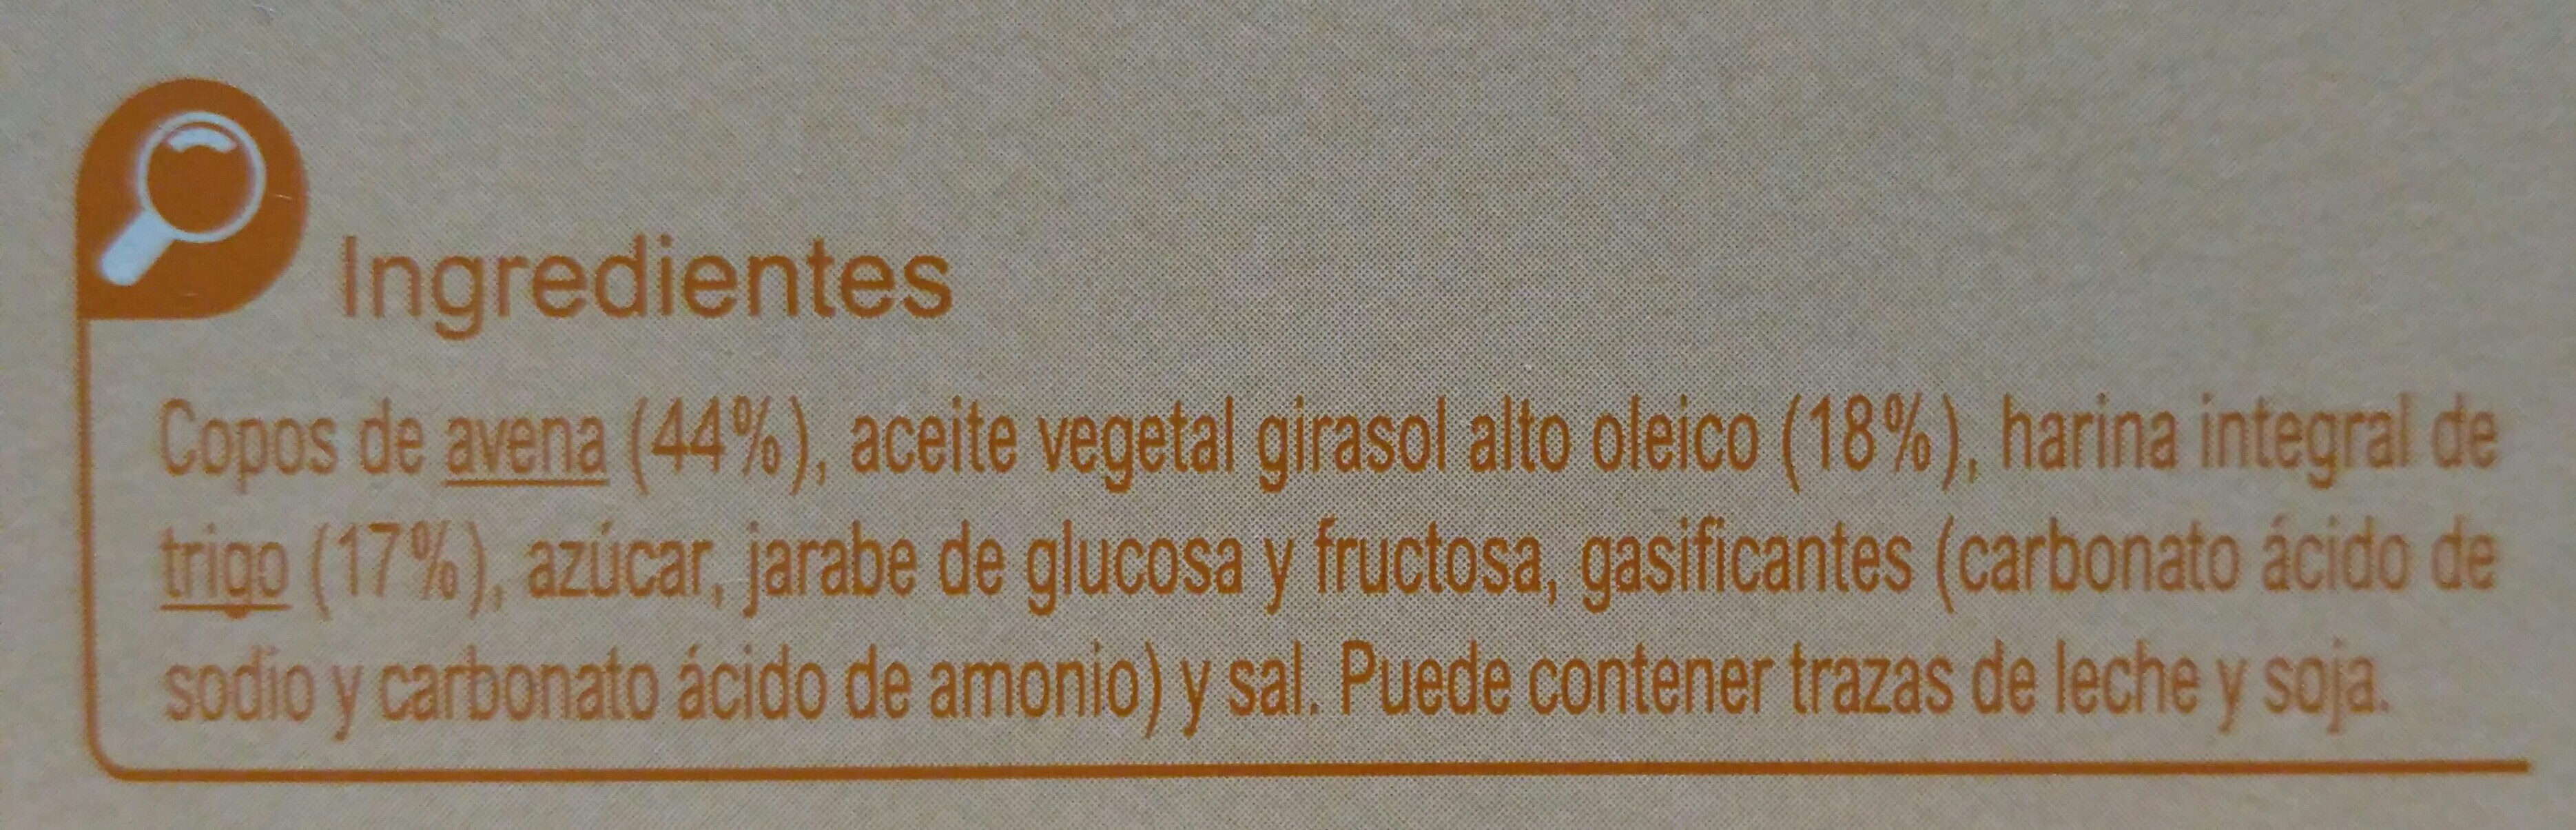 Galletas digestive avena - Ingredients - es